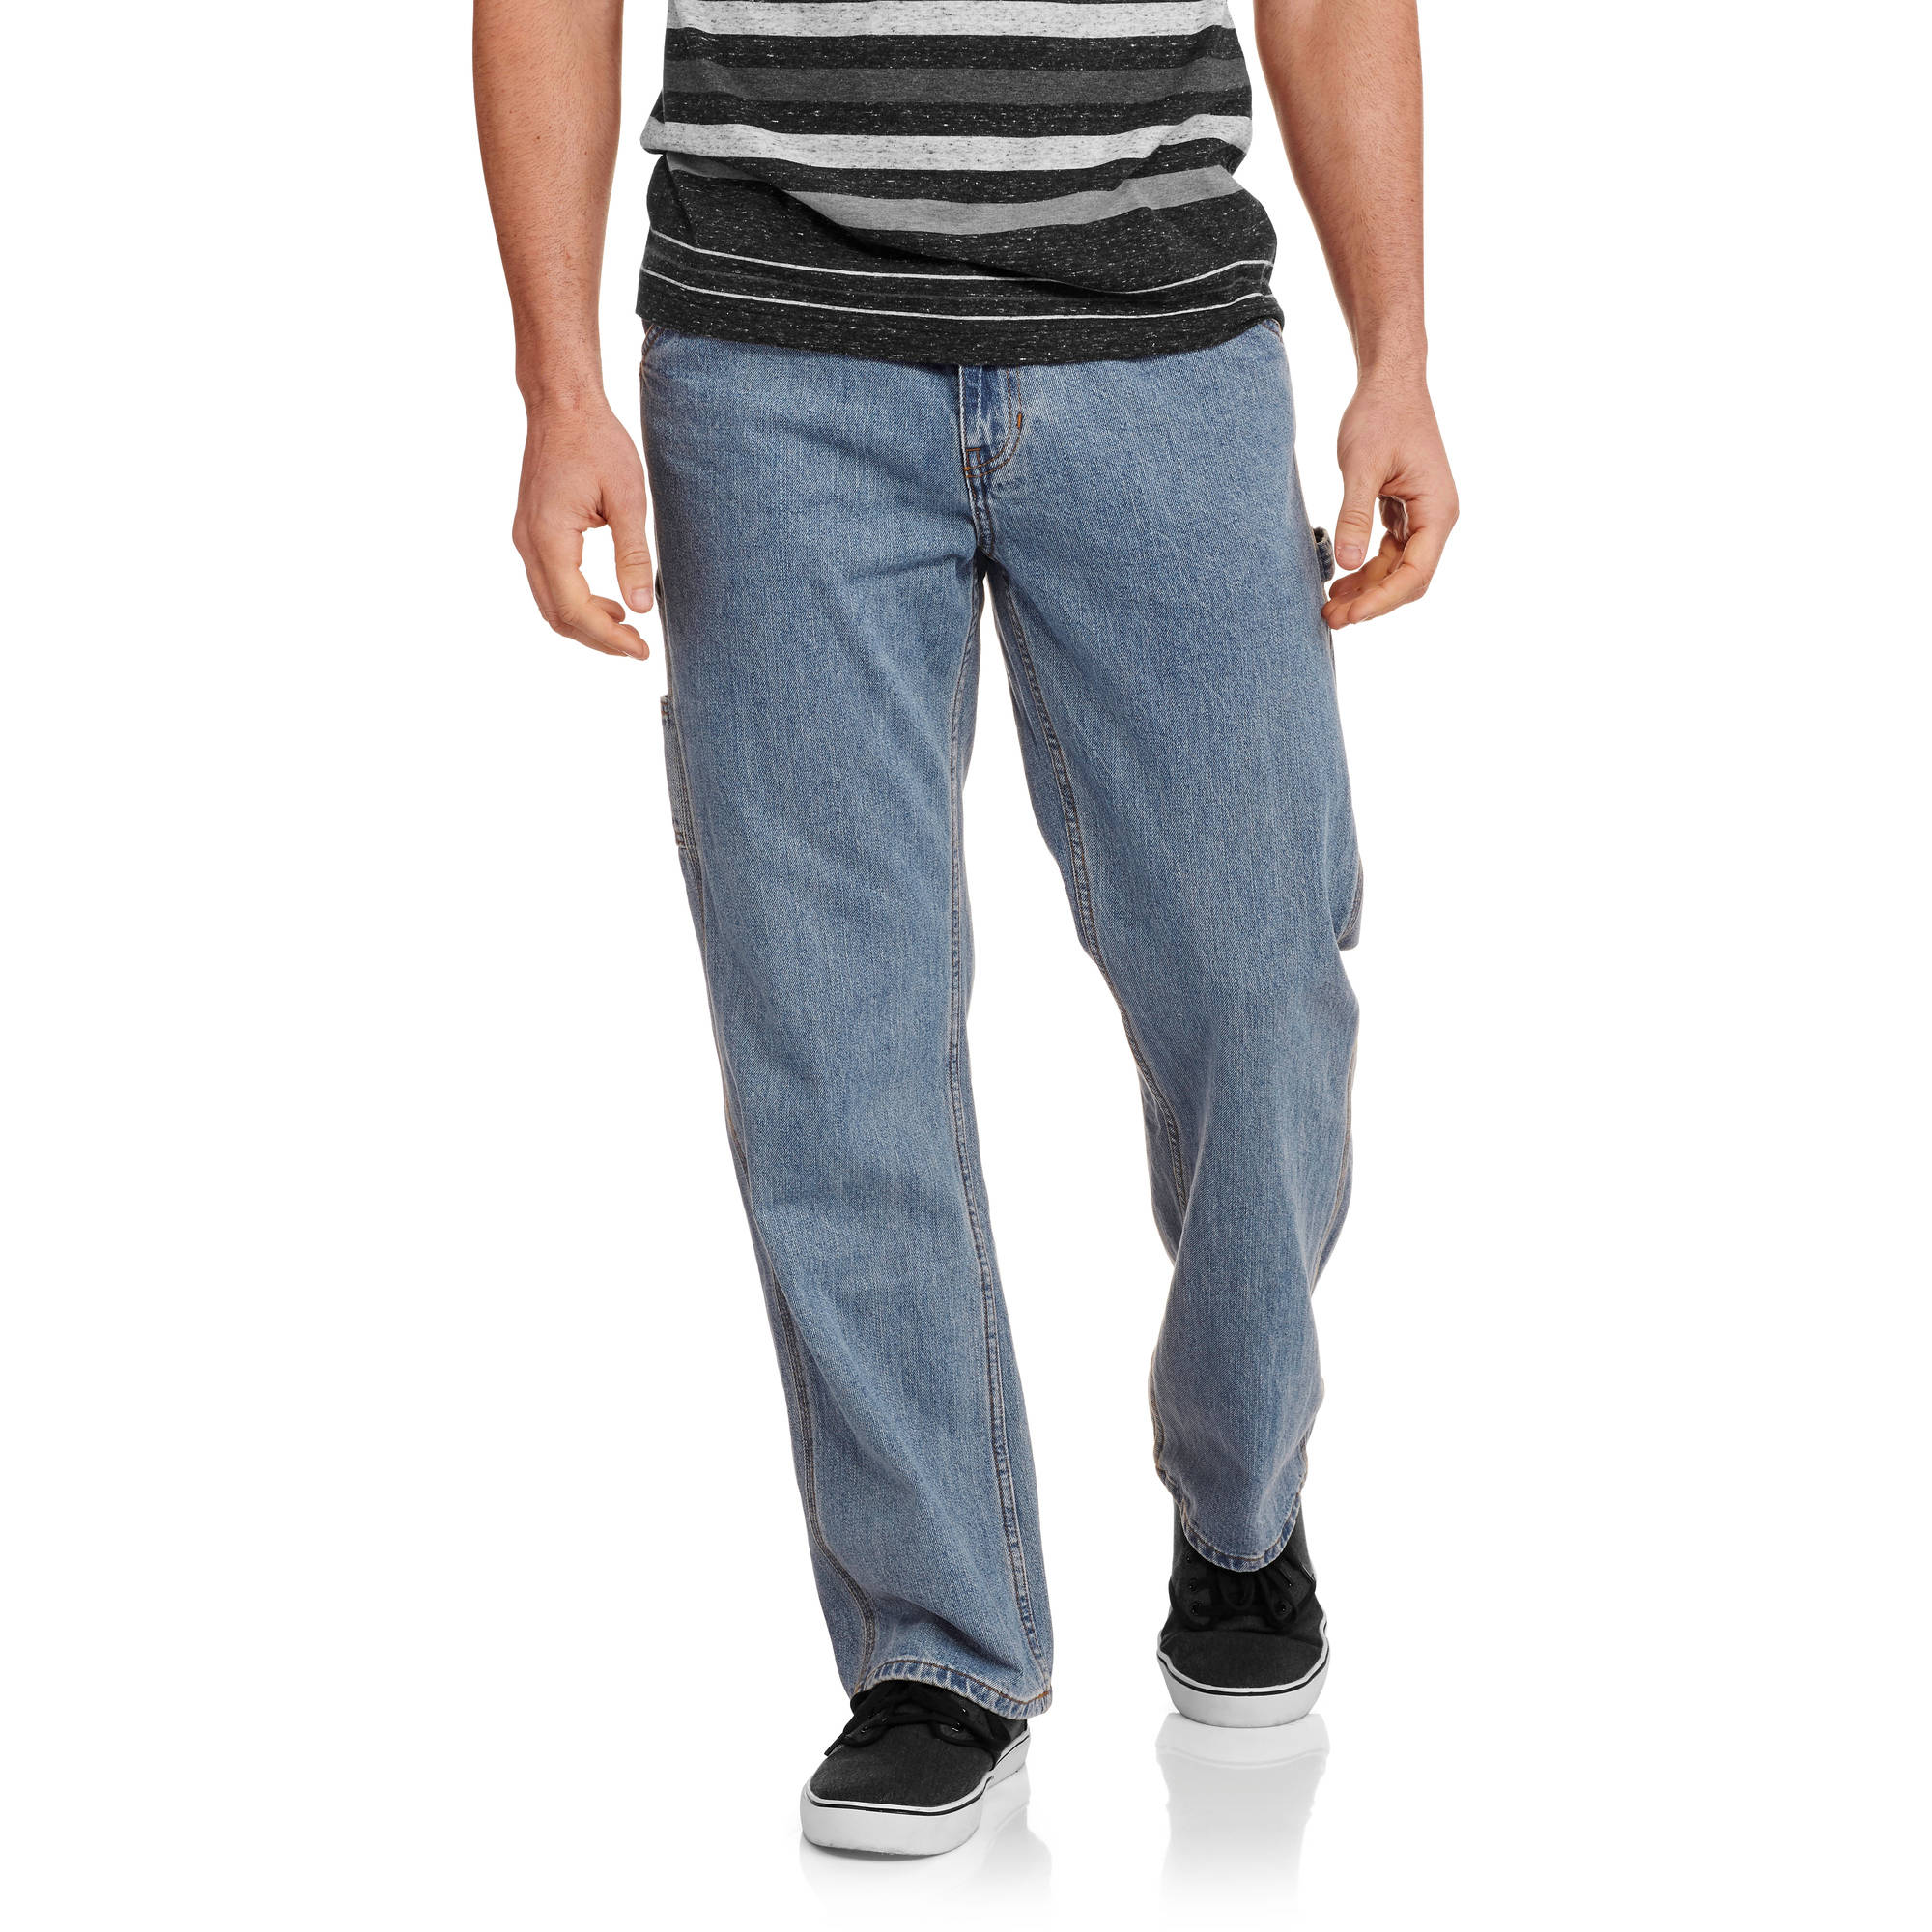 Faded Glory Big Men's Carpenter Jeans